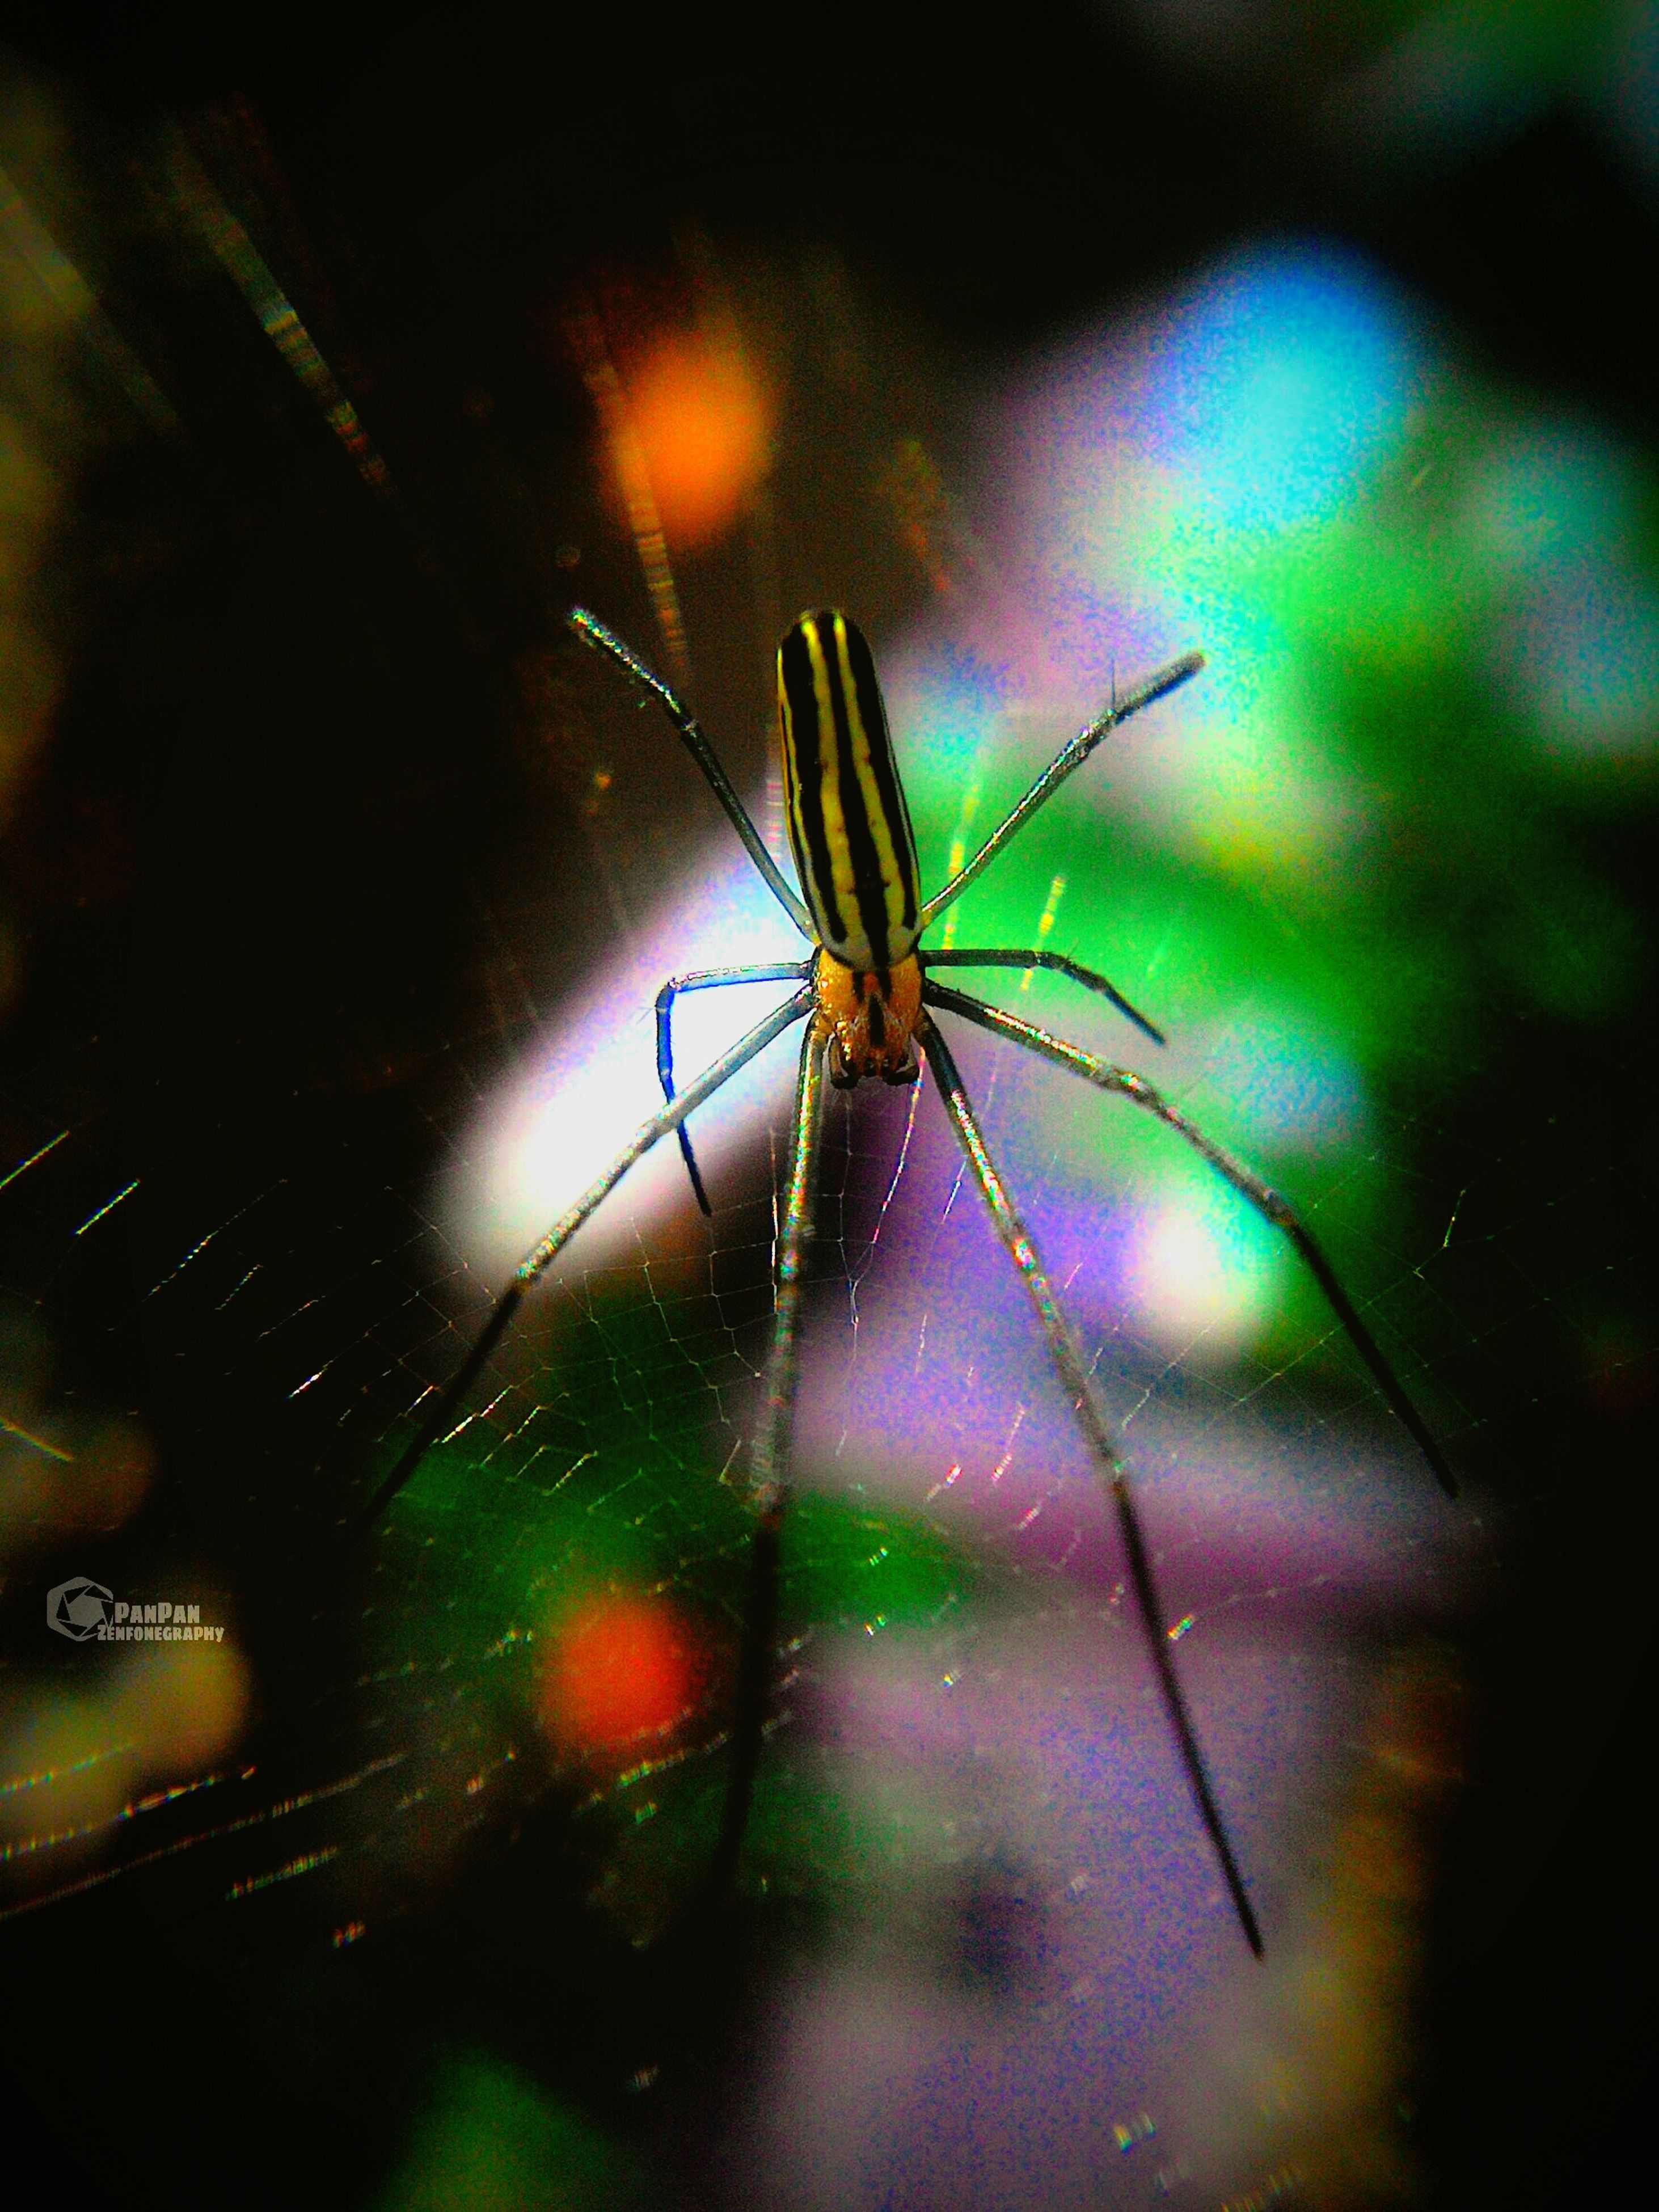 insect, one animal, animal themes, animals in the wild, spider web, wildlife, spider, focus on foreground, close-up, night, dragonfly, outdoors, selective focus, no people, spinning, nature, web, silhouette, full length